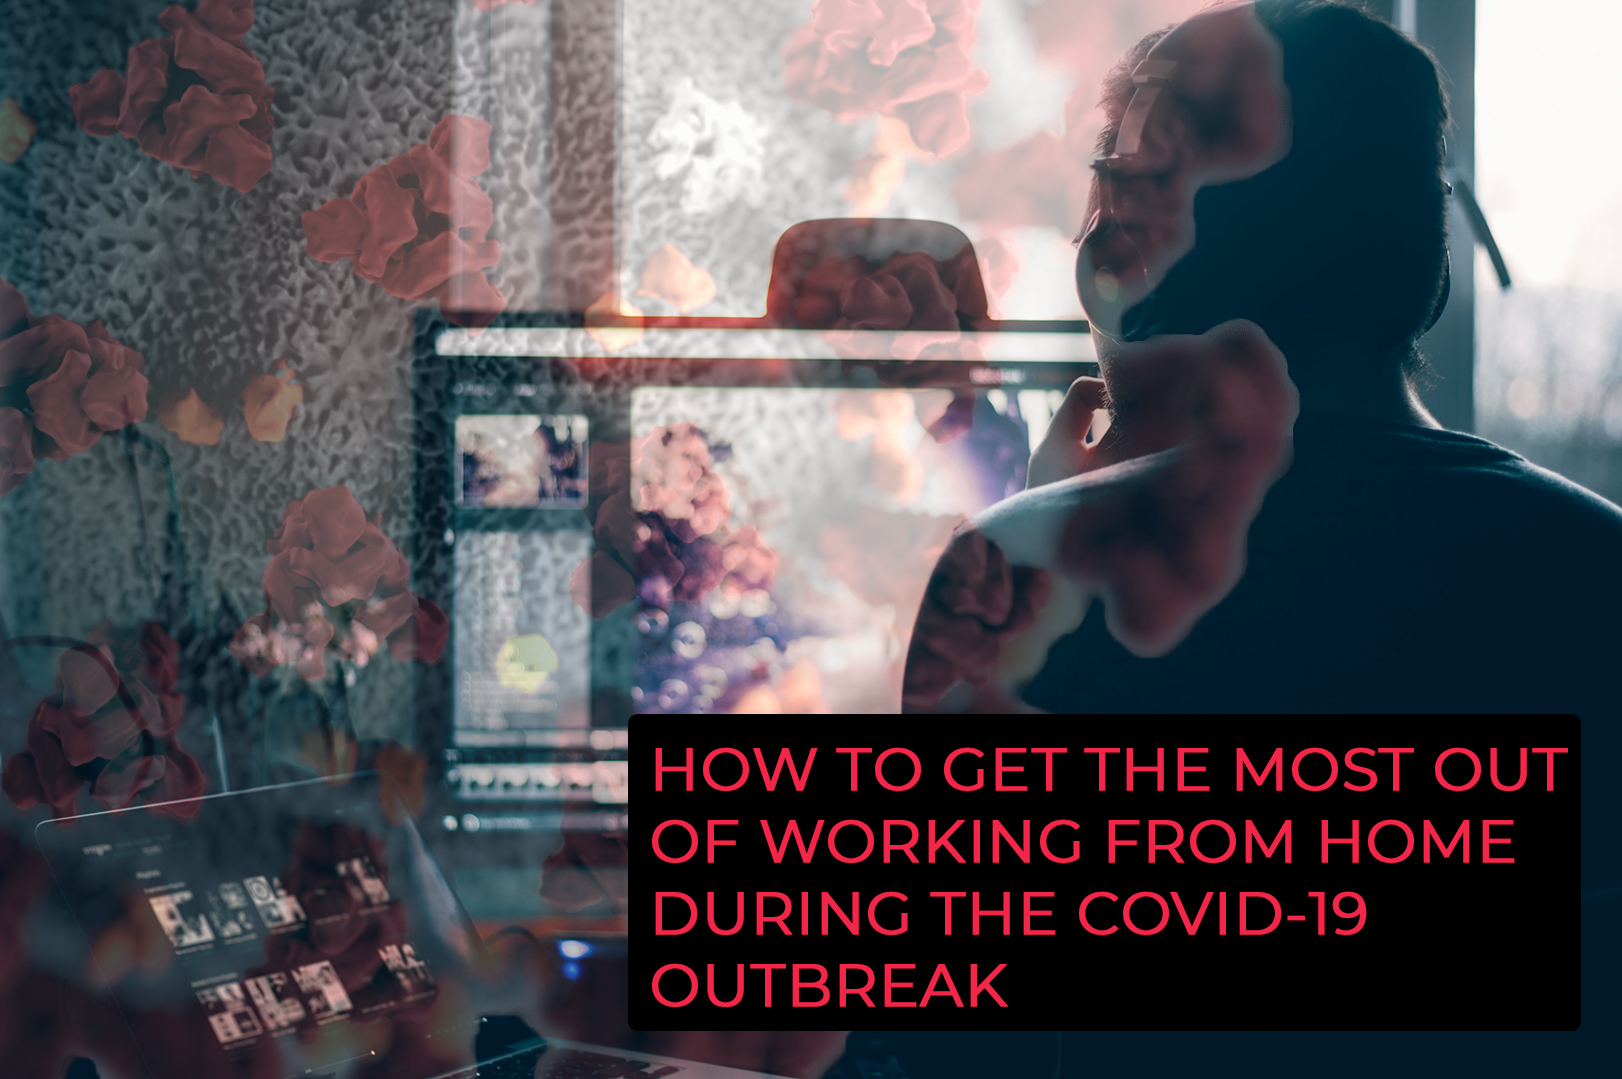 Remote Working Tips With Corona Virus And COVID-19 cover image